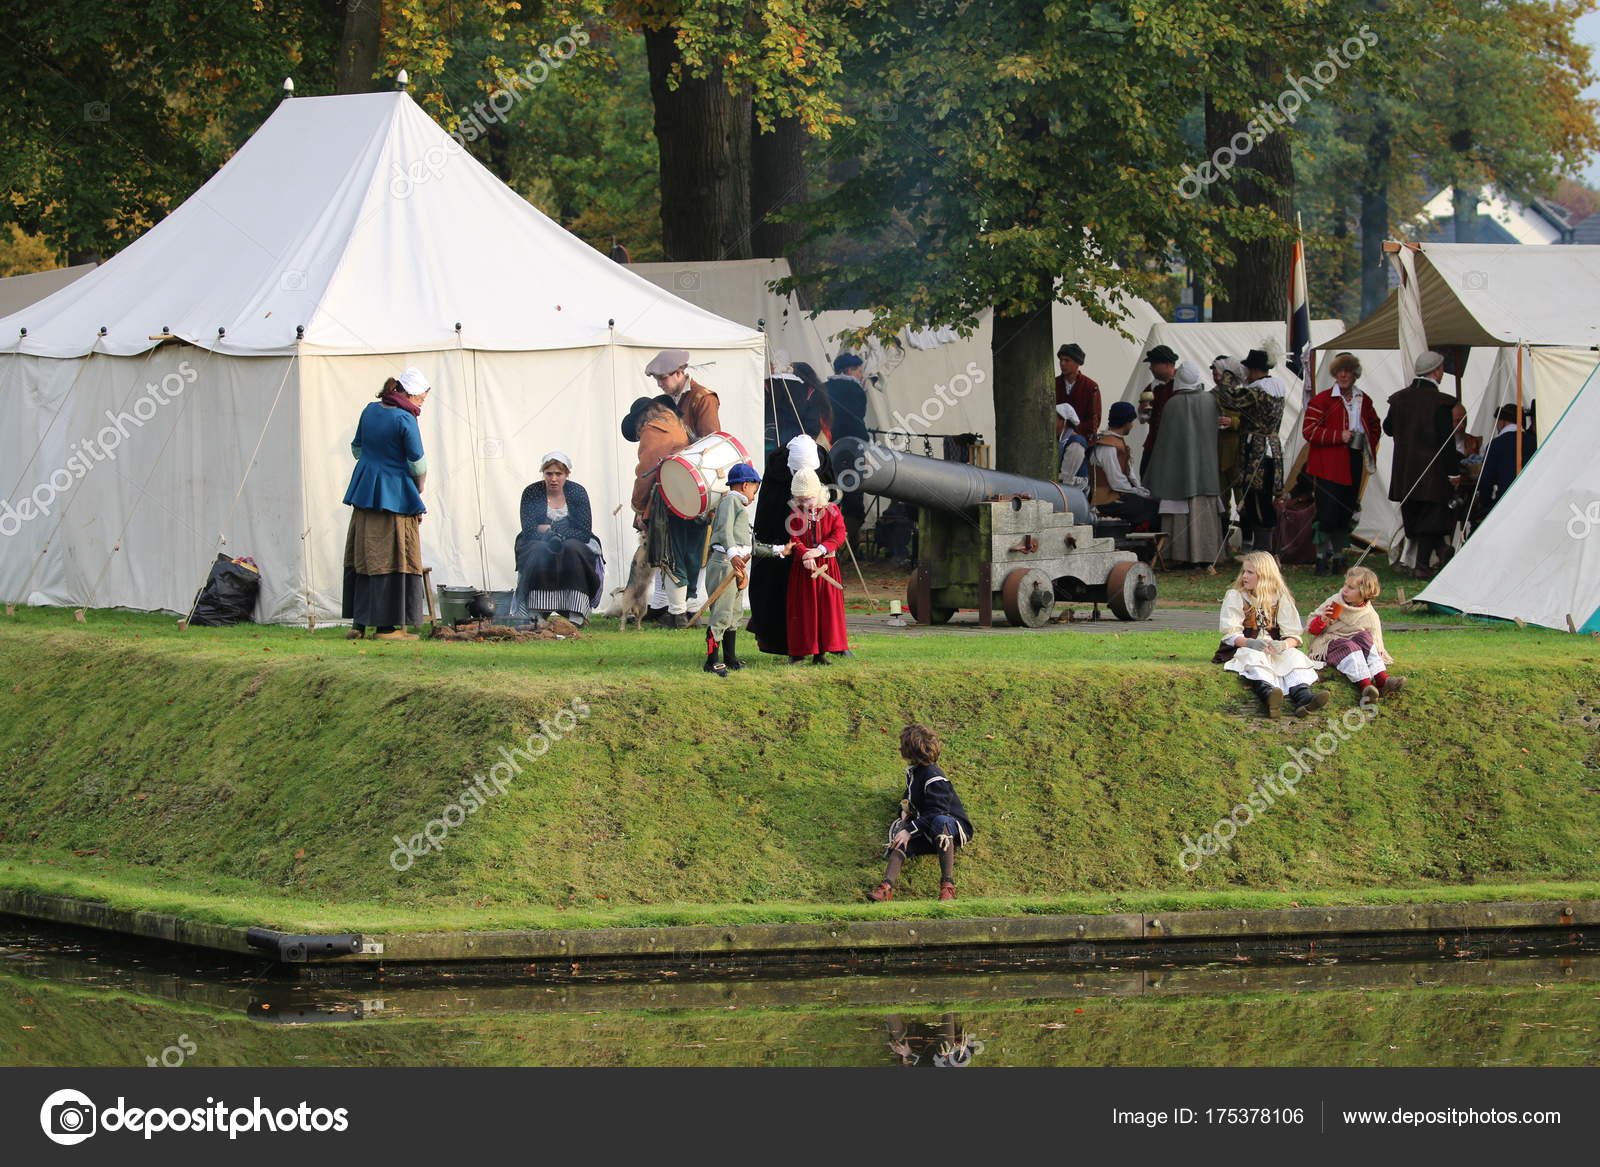 Groenlo Netherlands October 2012 Reenactment Battle Grolle Historic Battle Spanish u2014 Stock Photo #175378106 & Groenlo Netherlands October 2012 Reenactment Battle Grolle ...